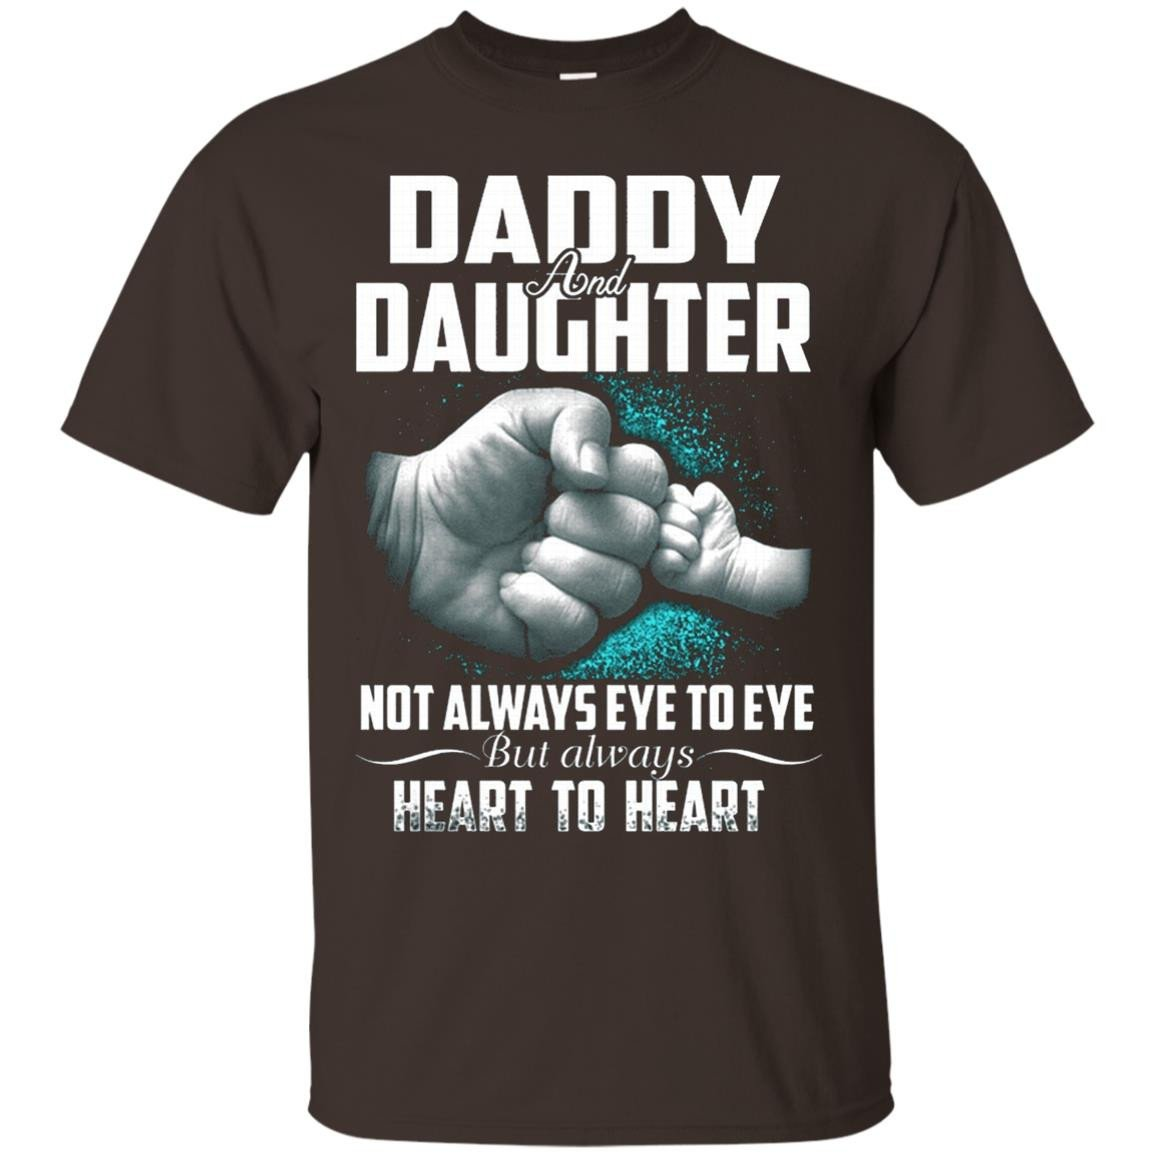 Daddy daughter not always eye to eye - T-Shirt